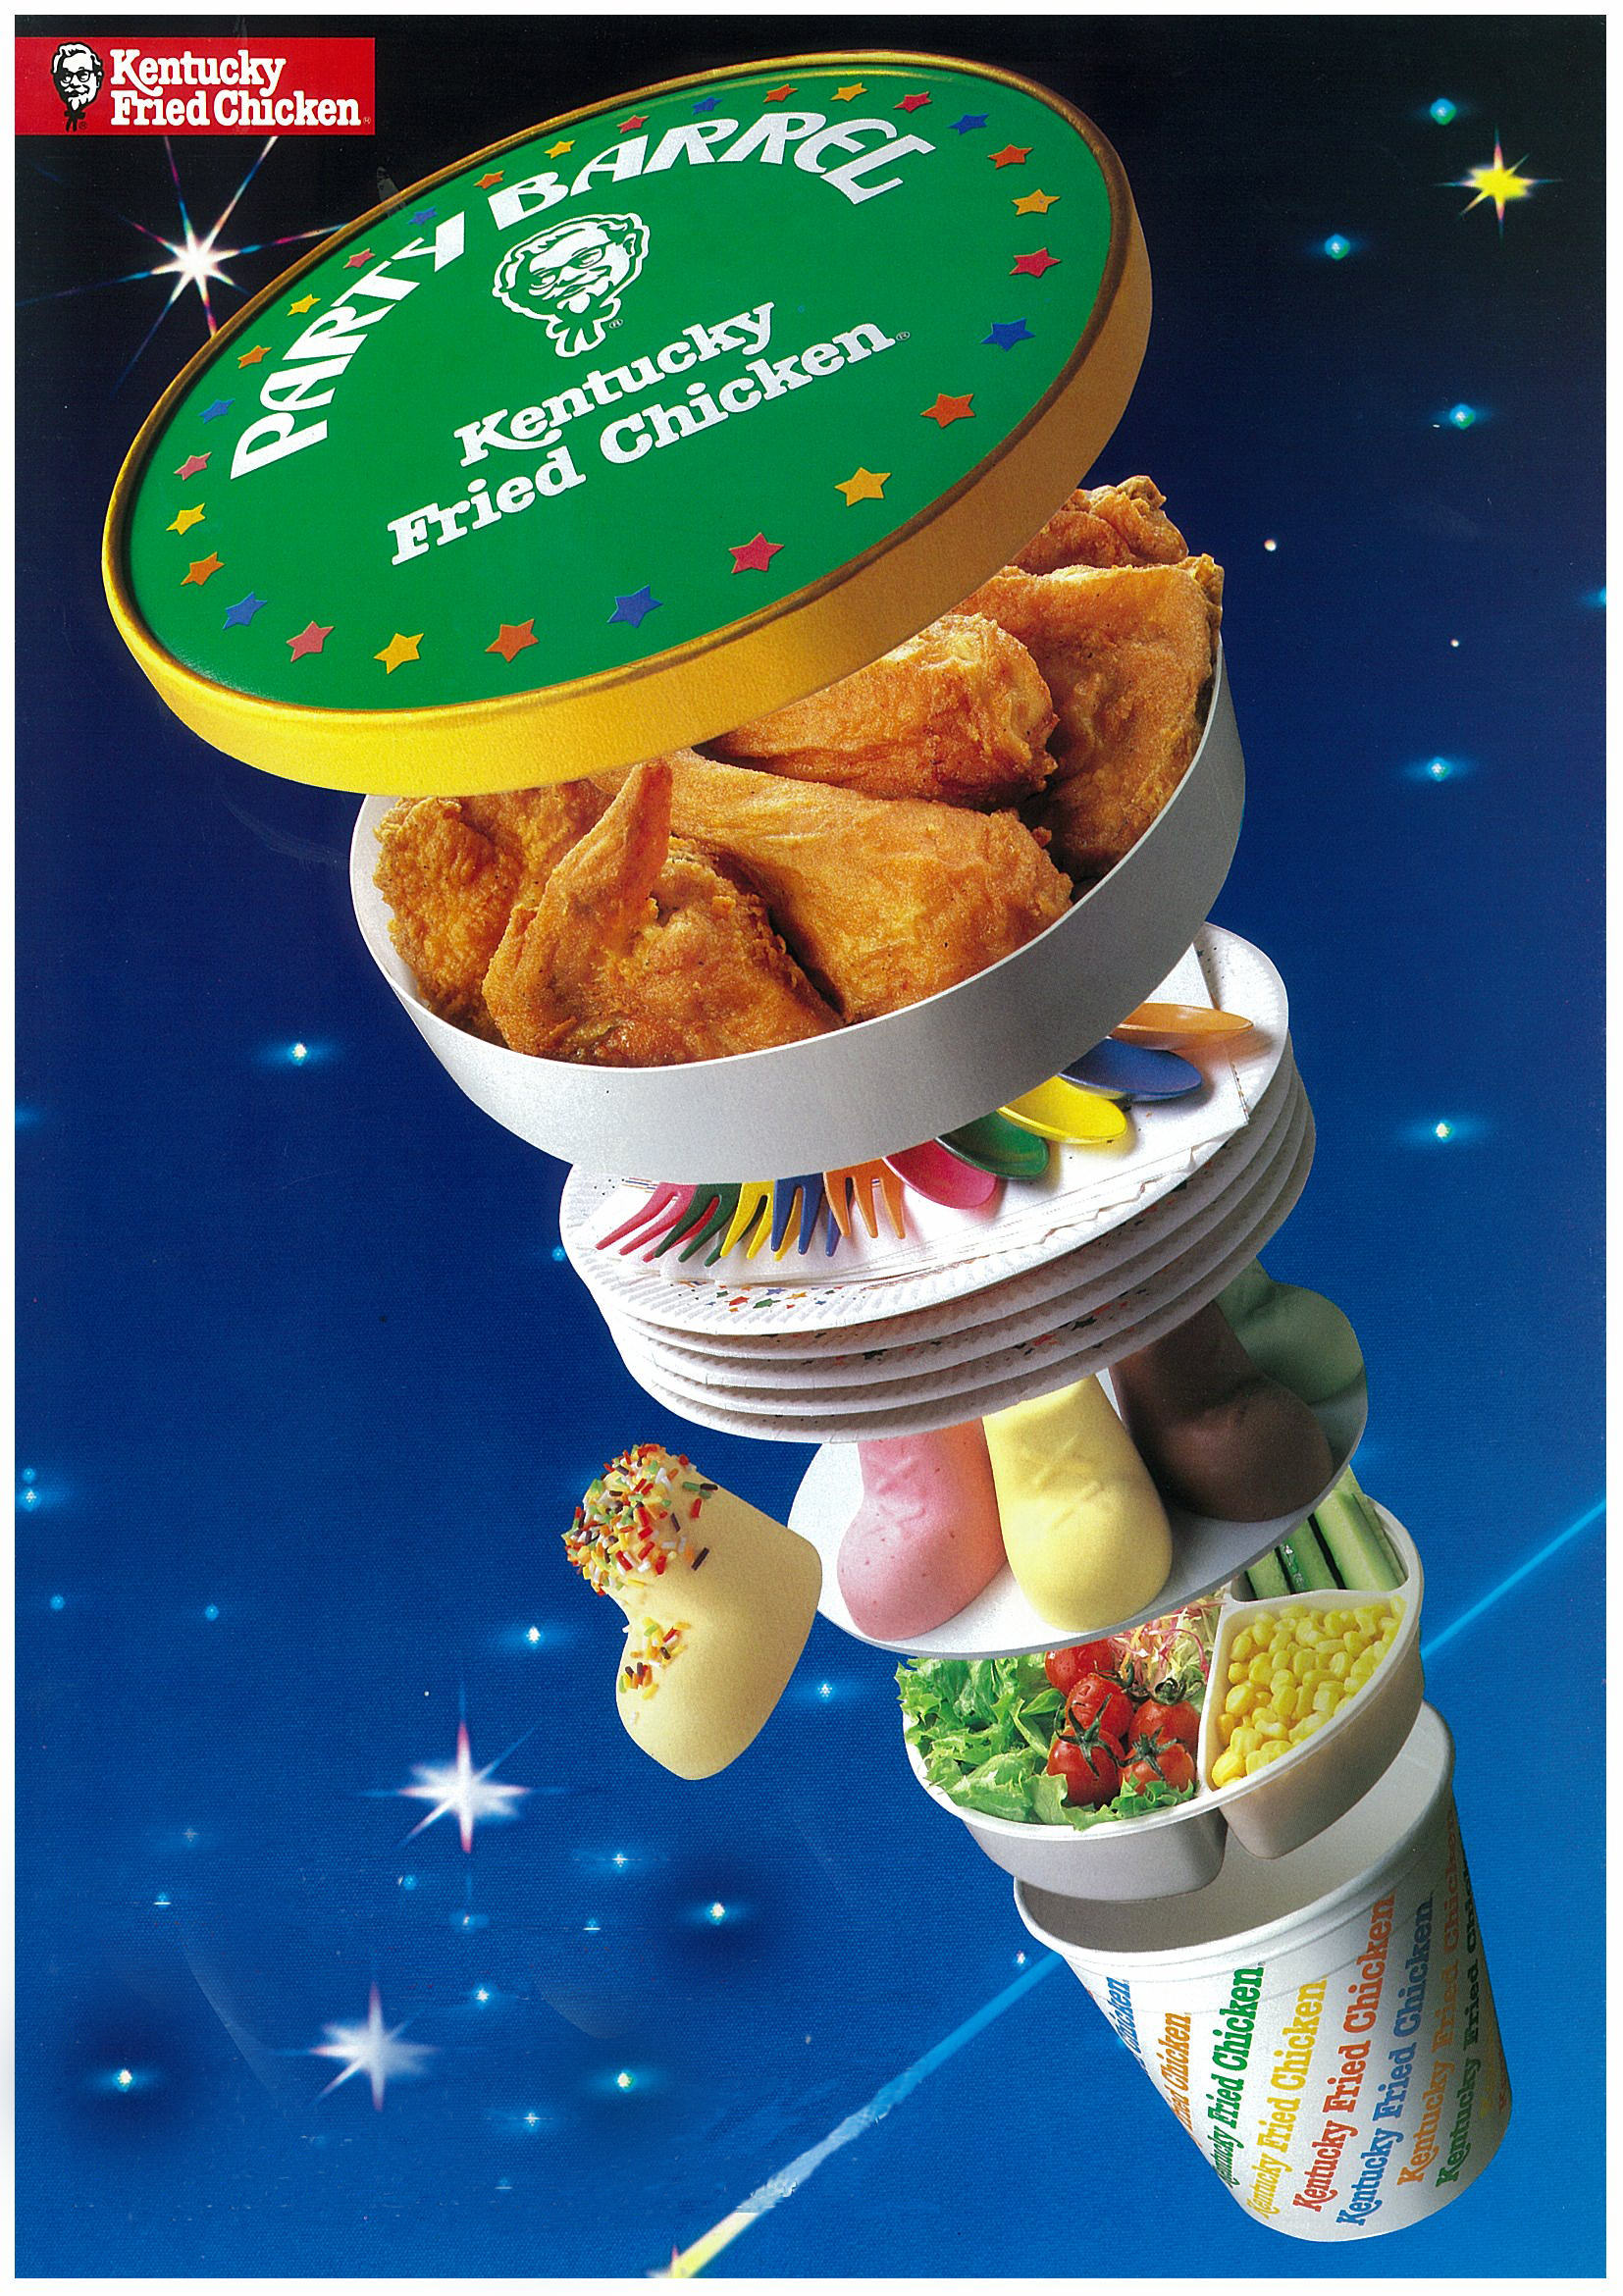 The Traditional Japanese Christmas Dinner Is KFC, Because Why Not? KFC 1987 Party Barrel